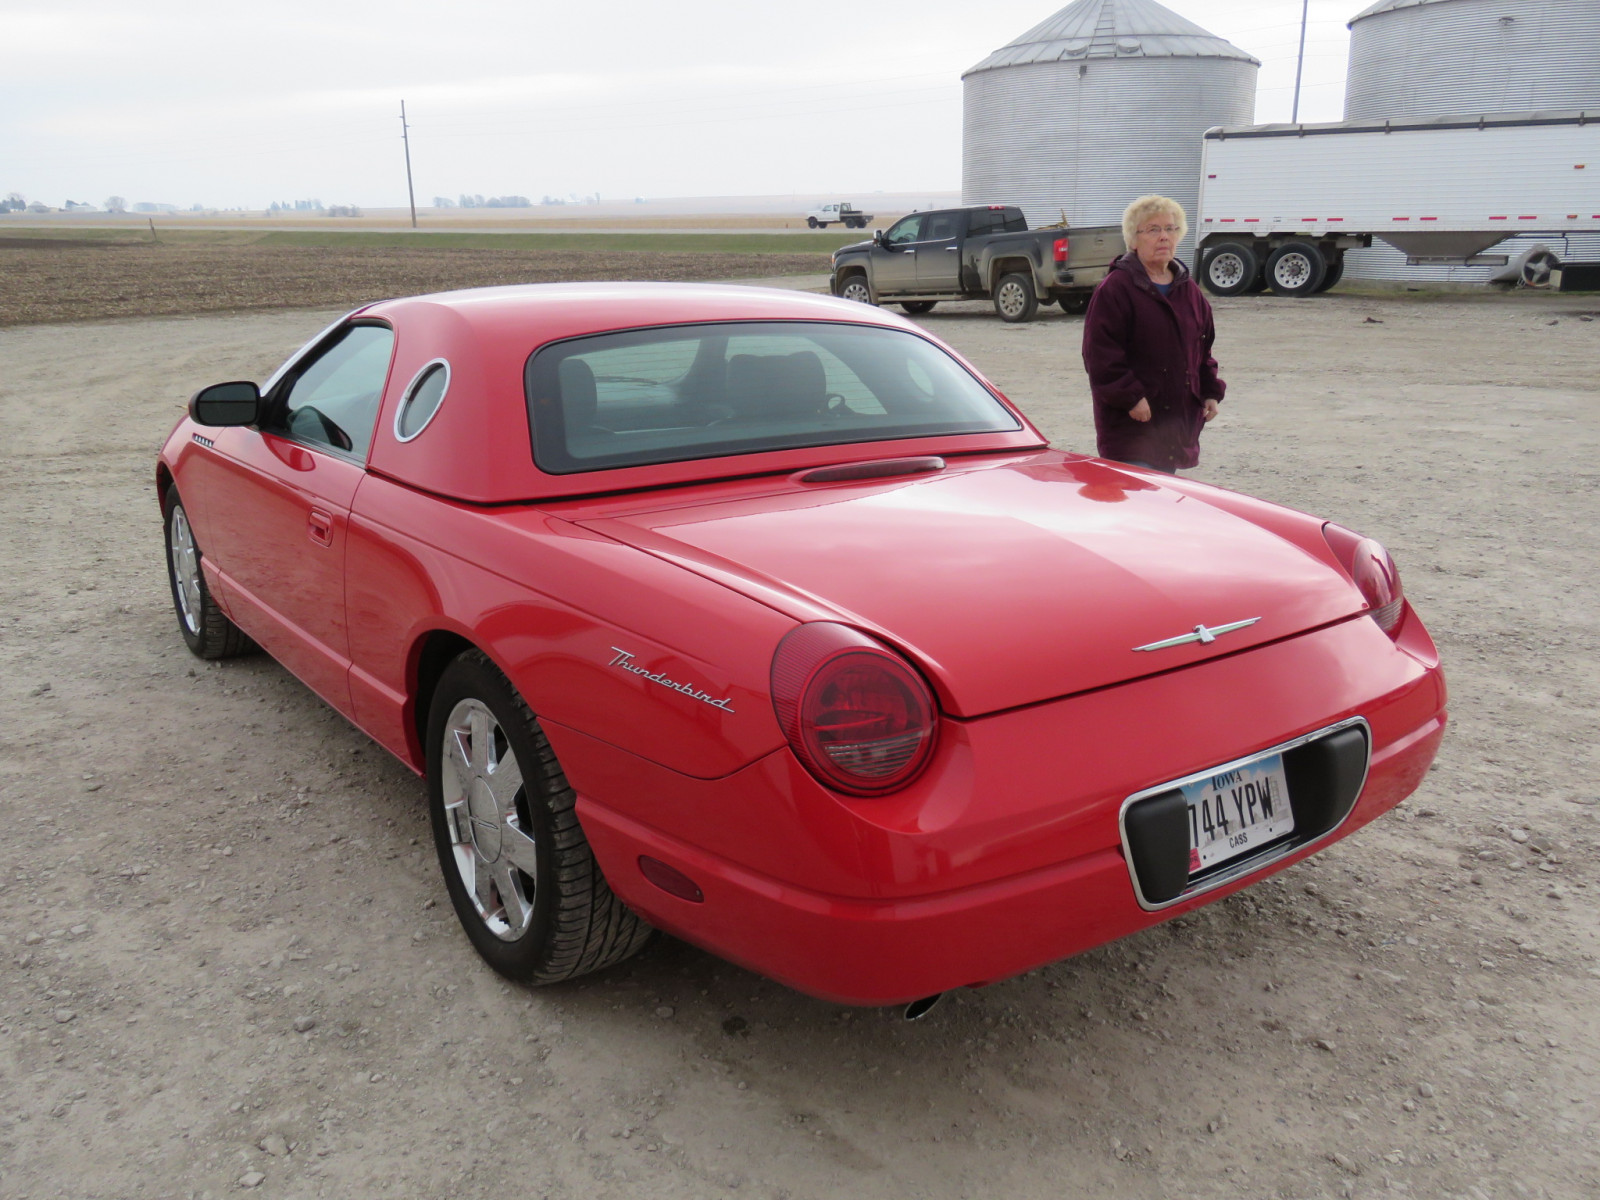 2002 Ford Thunderbird Roadster - Image 7